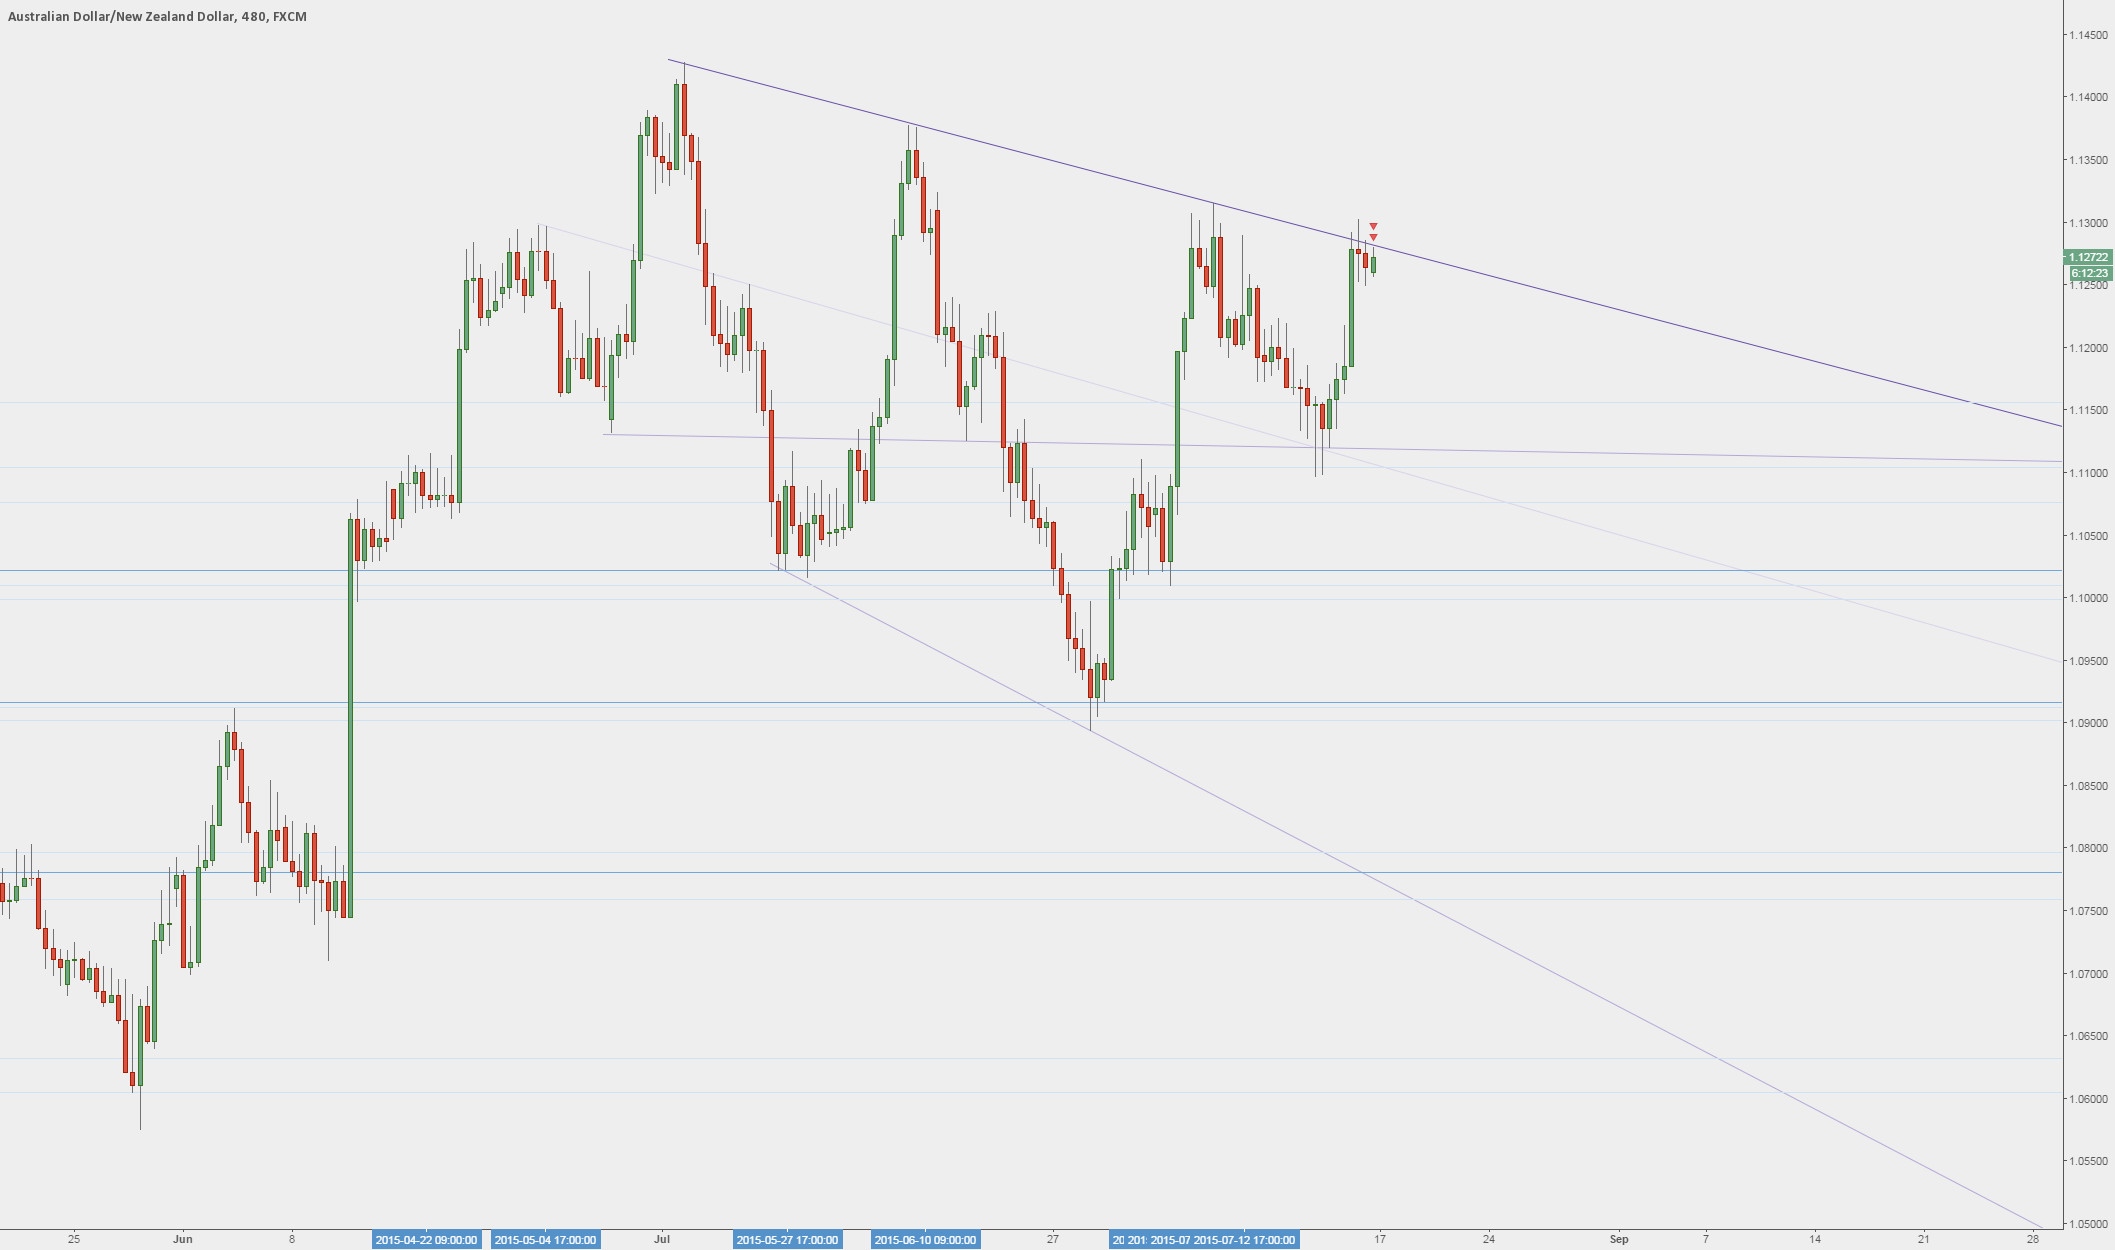 AUDNZD - Time to replay the past?